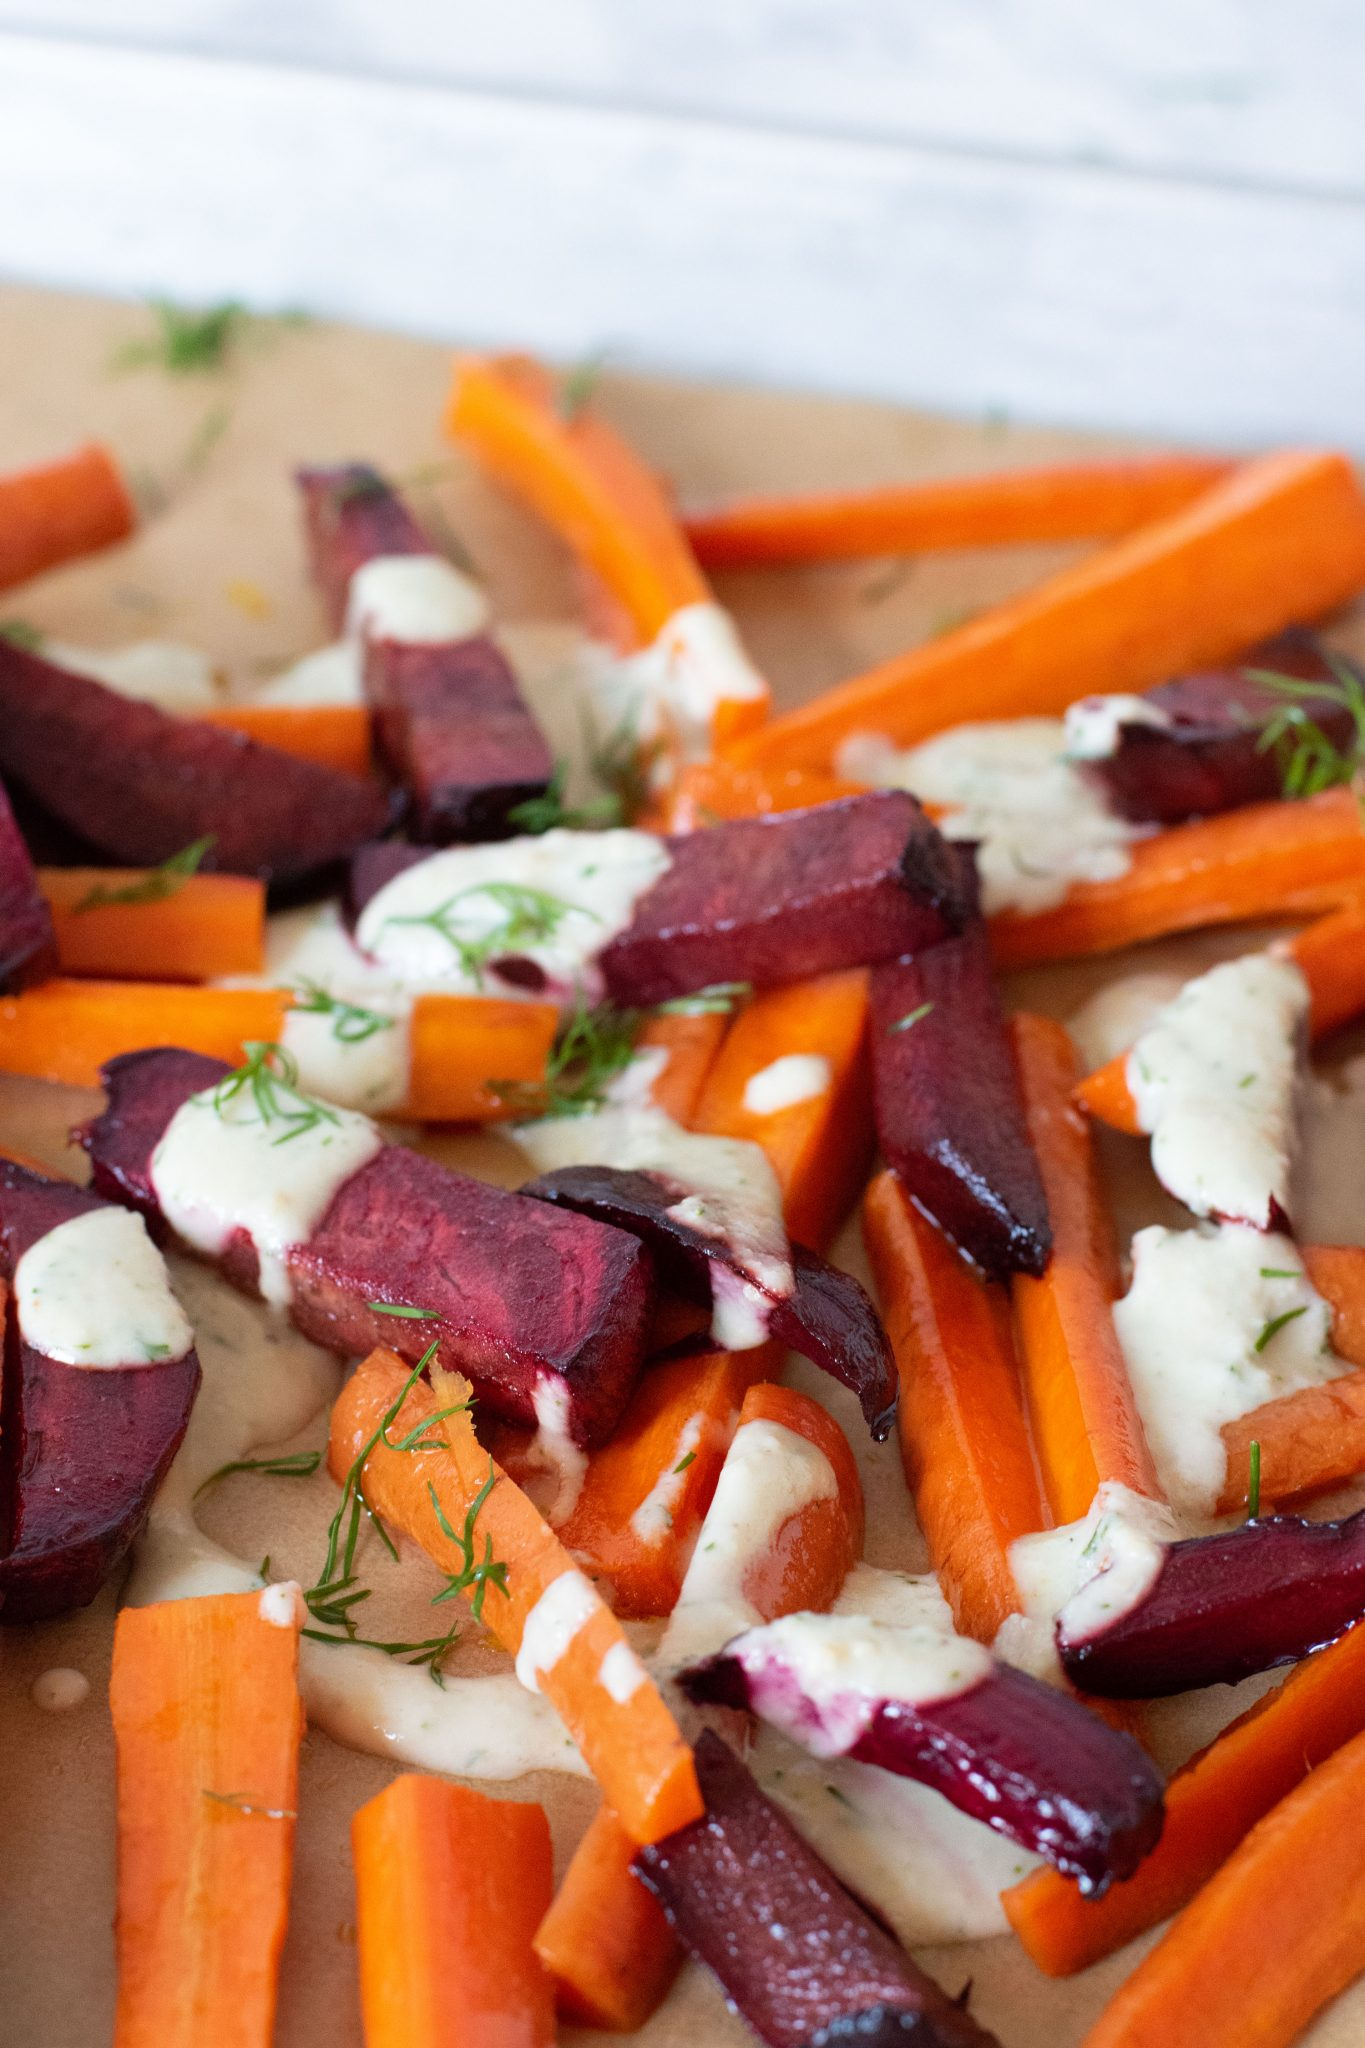 Roasted Beets and Carrots on a baking sheet, drizzled with garlic dill sauce